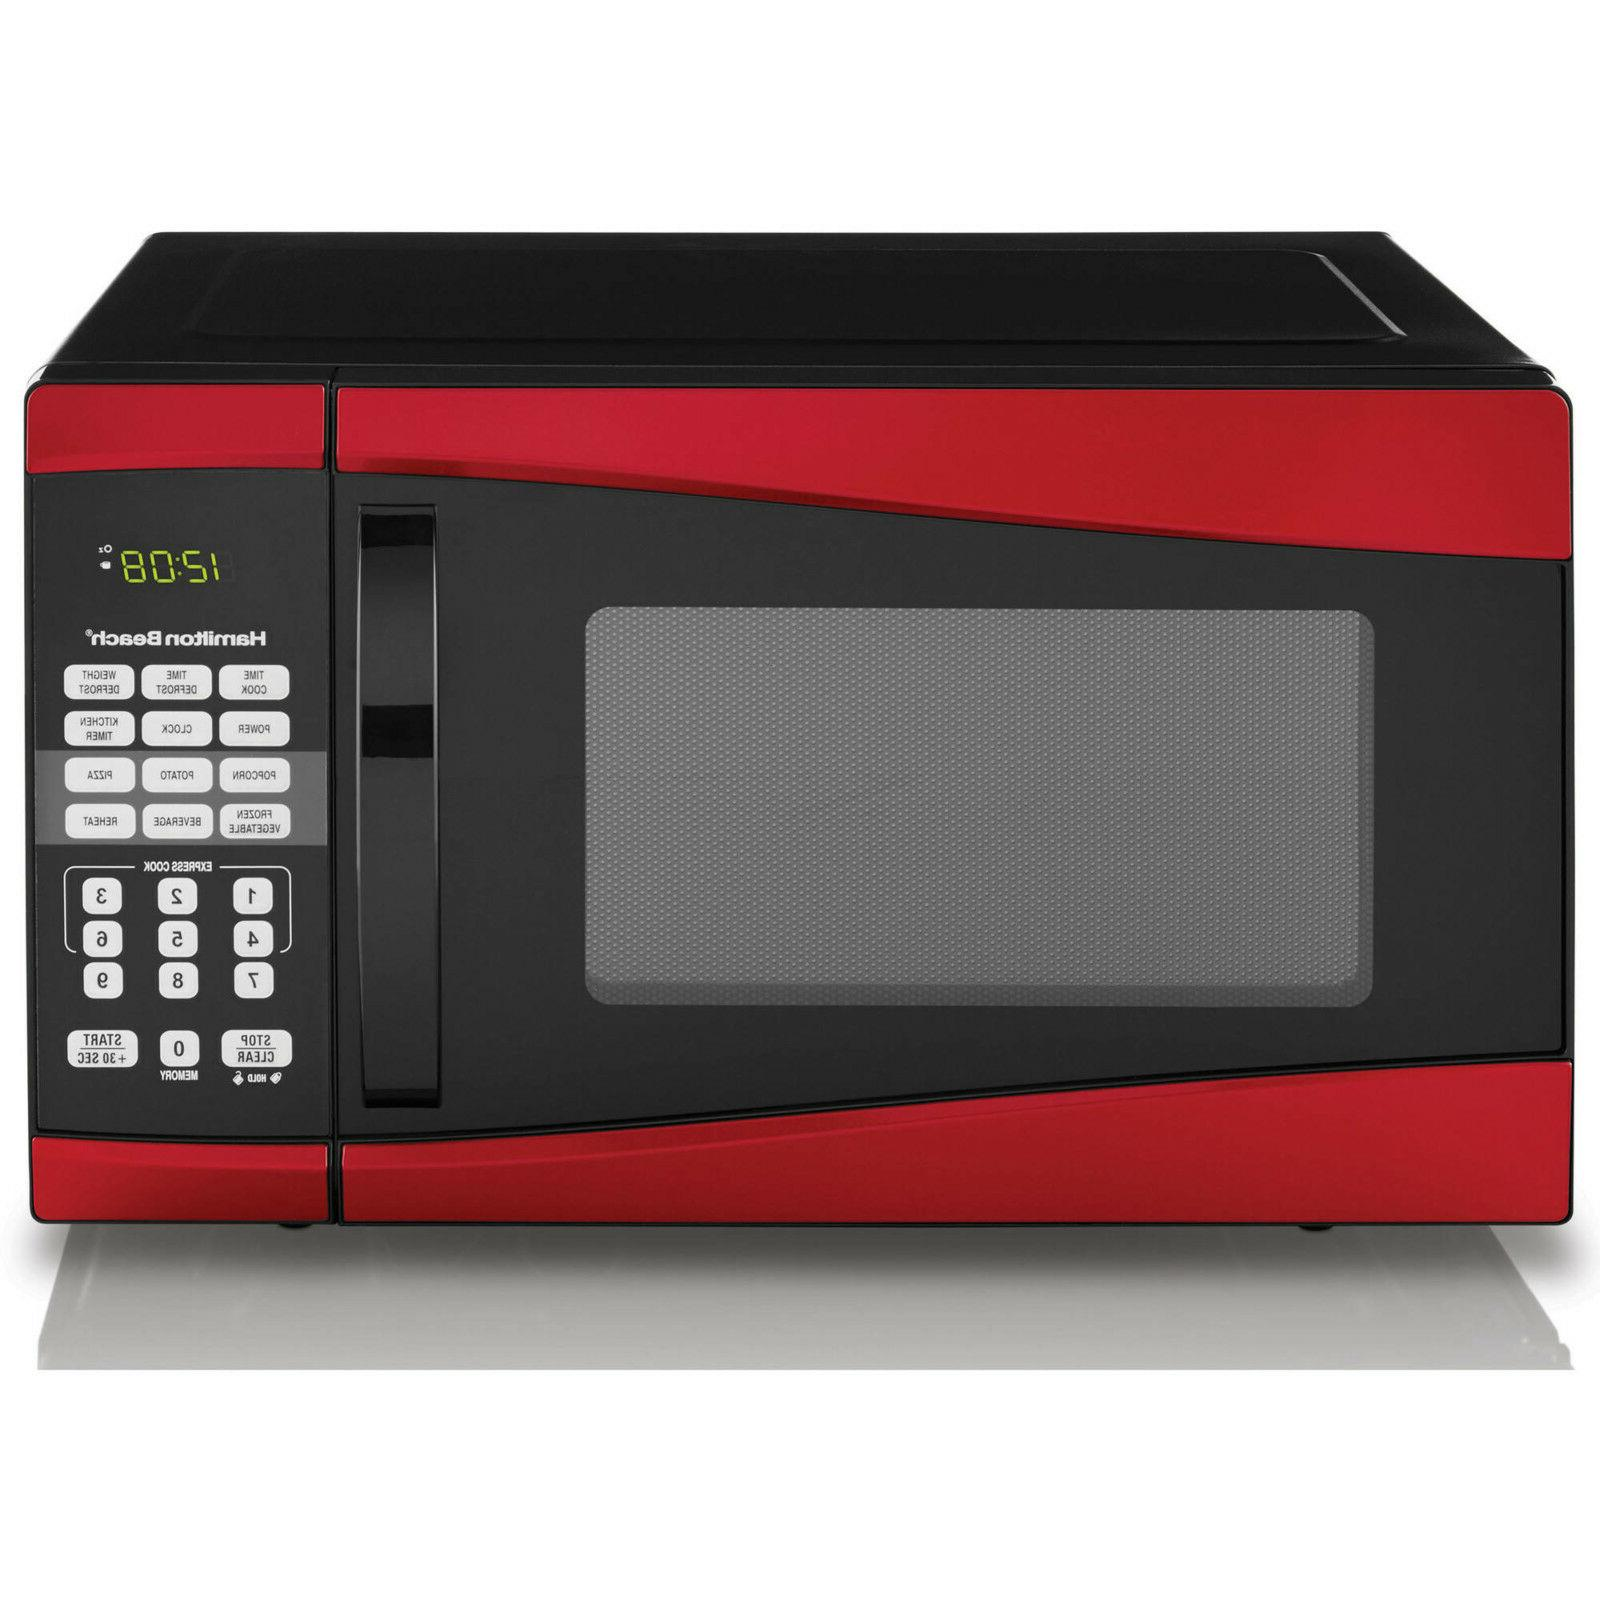 Low Small Best Dorm Kitchen Countertop Microwave